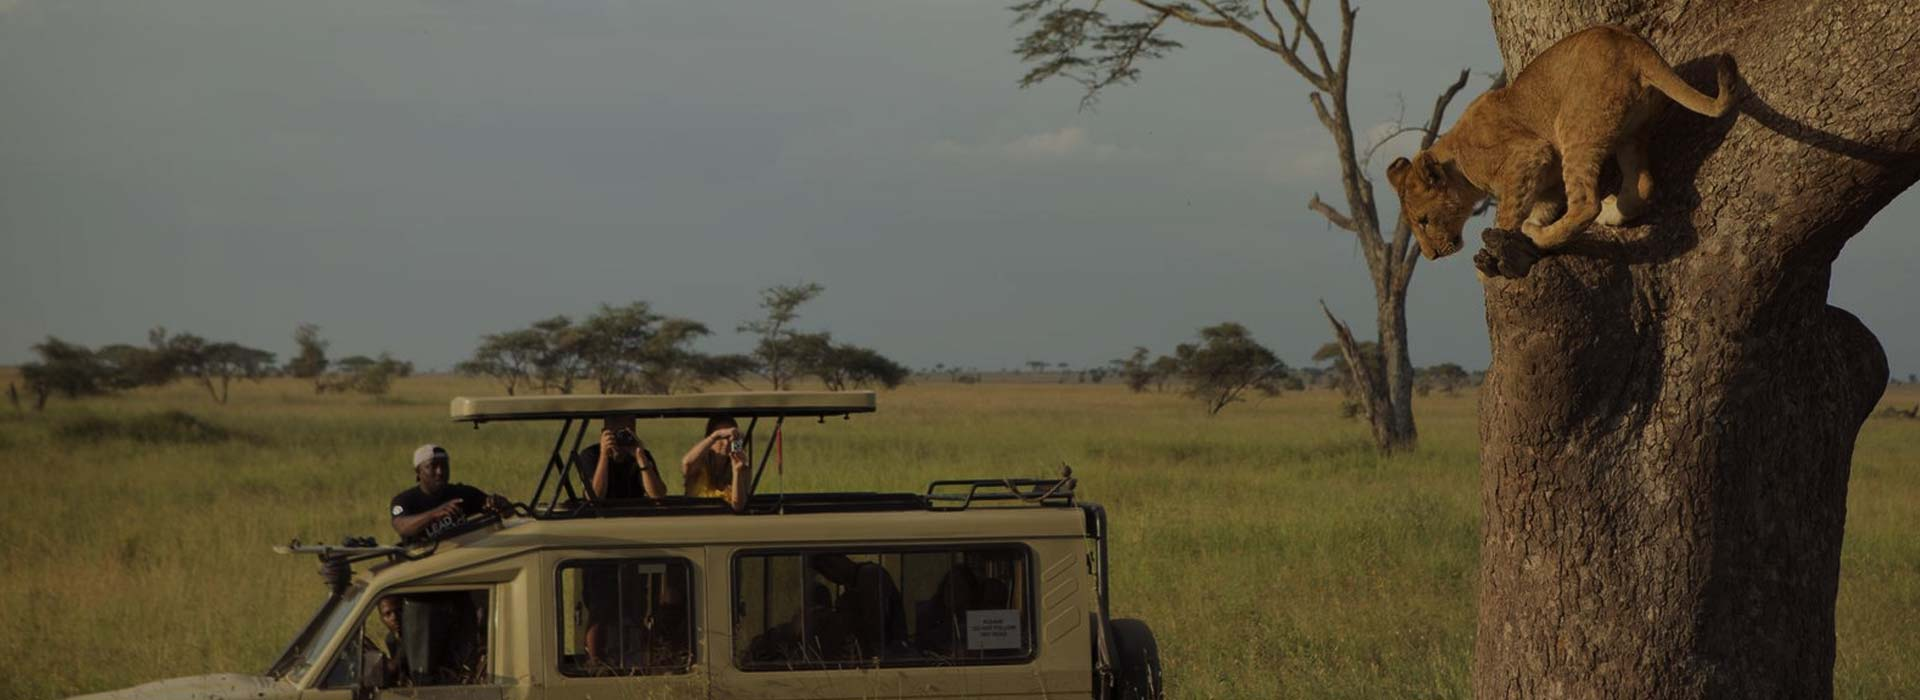 How To Go Tanzania Safari